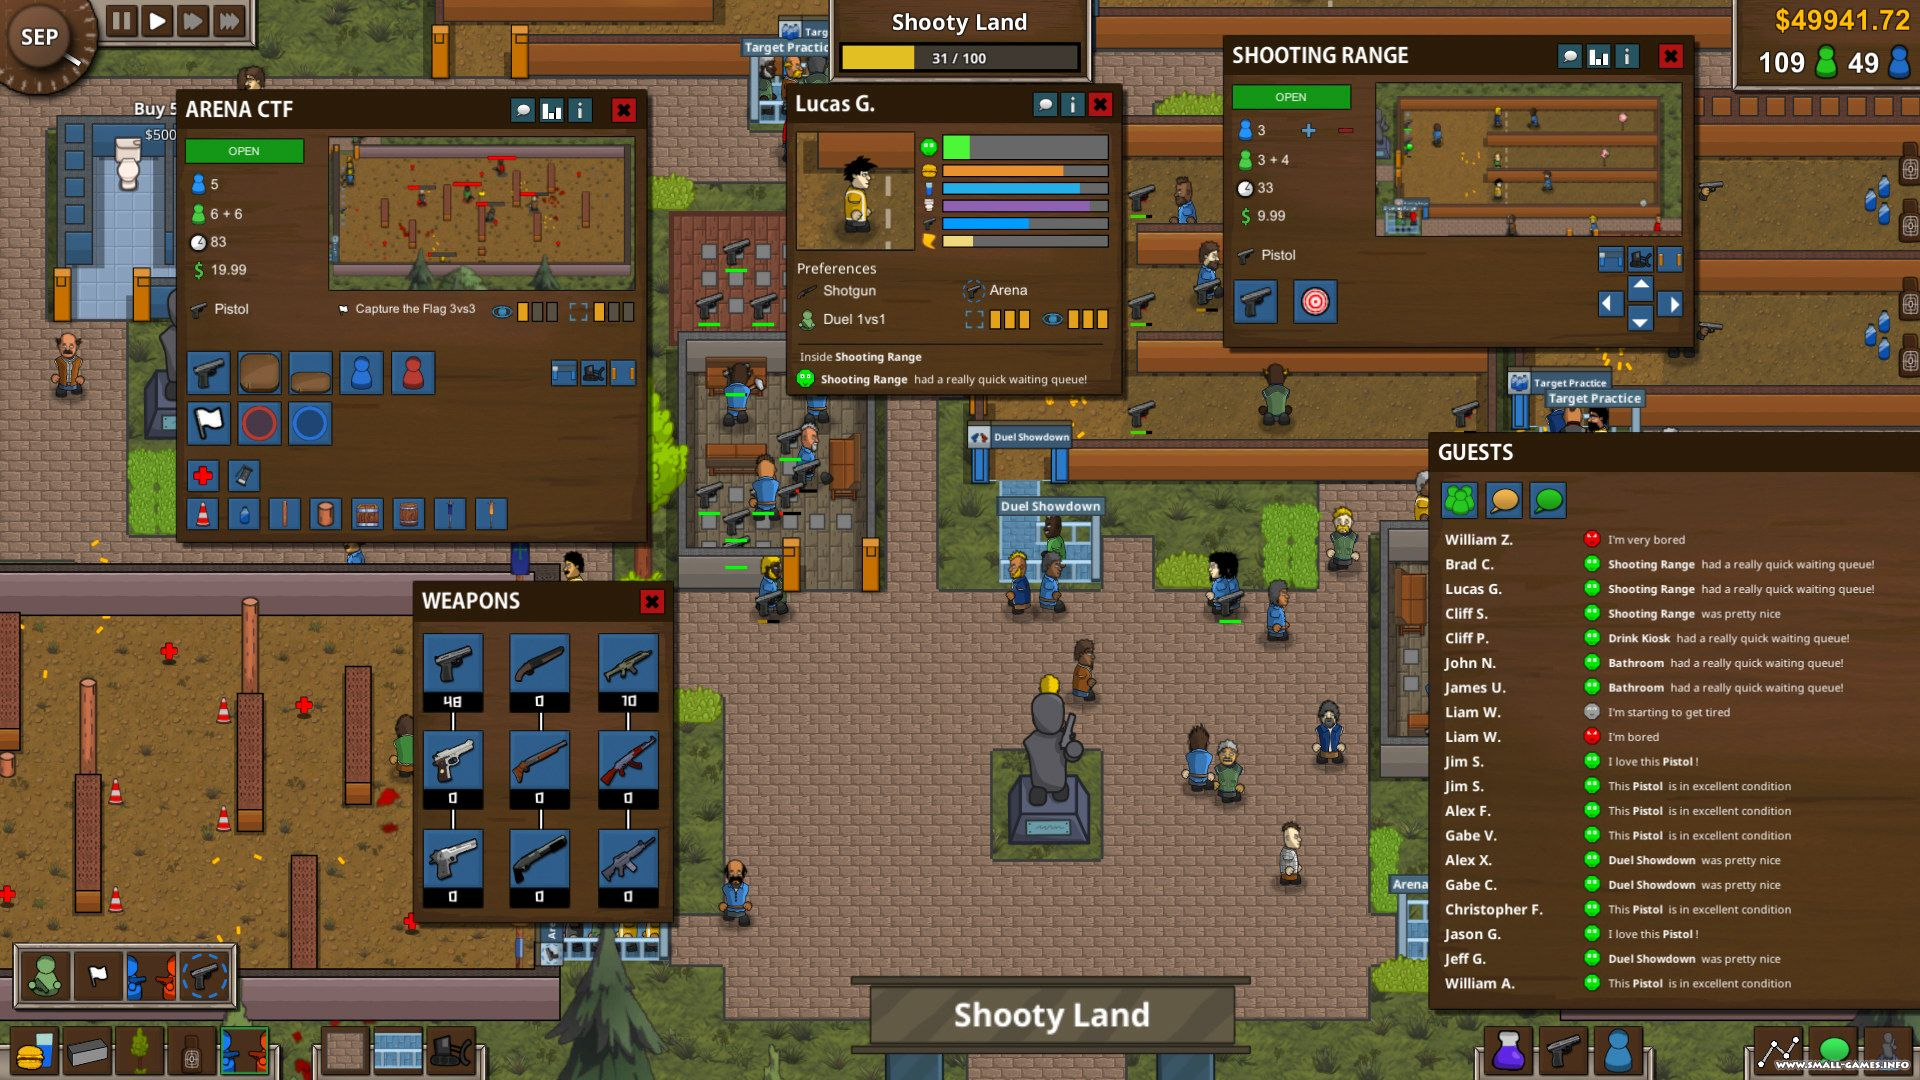 Battle Royale Tycoon v0.04 [Steam Early Access]